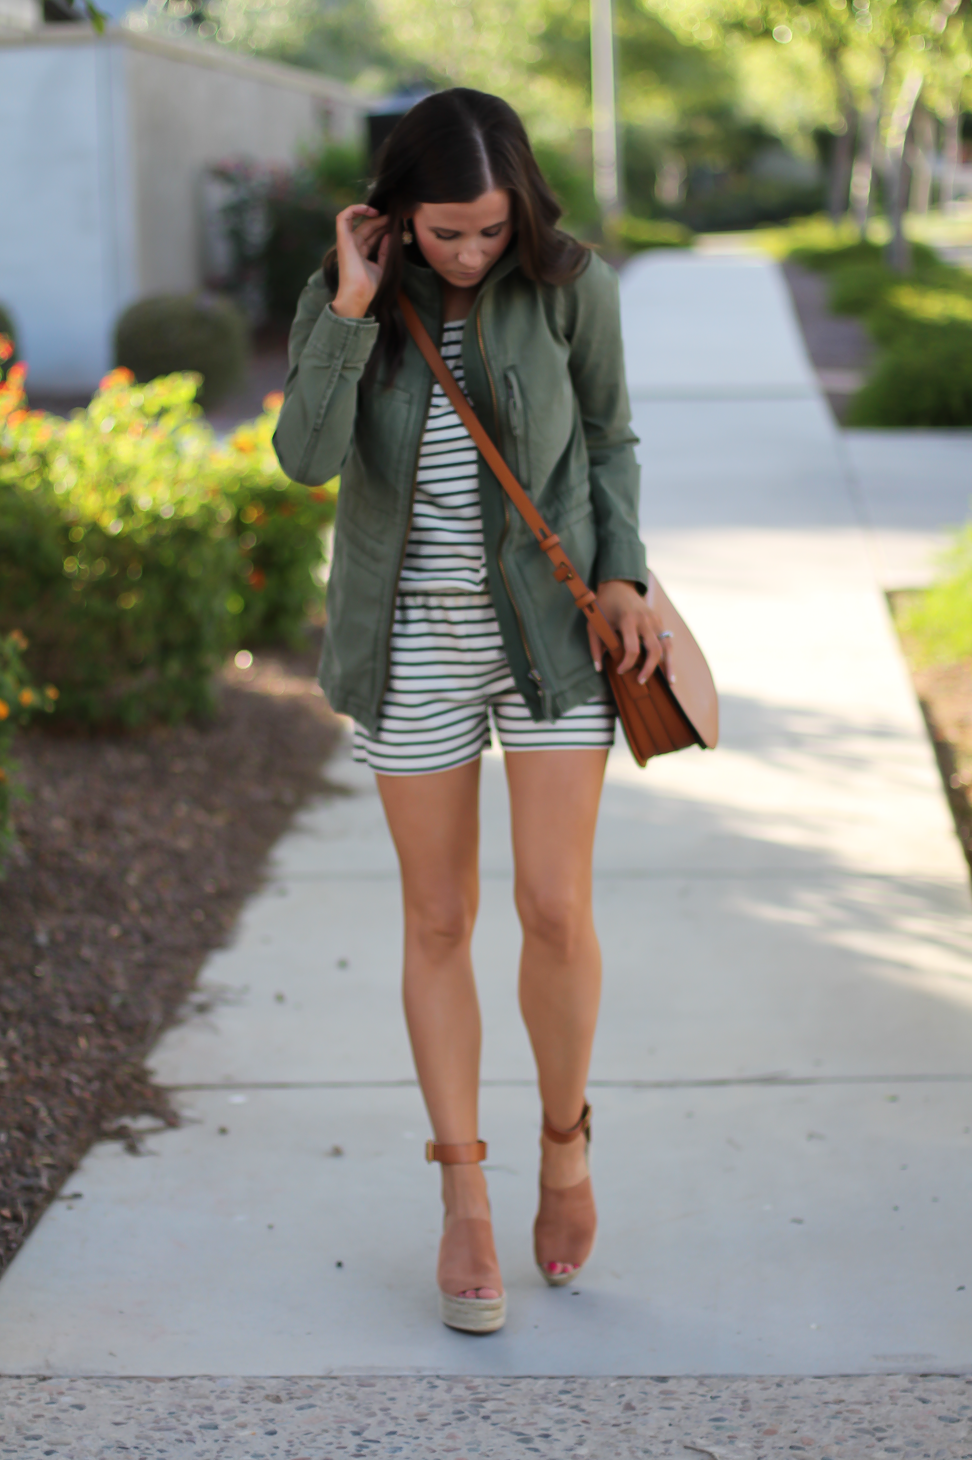 Striped Romper, Green Utility Jacket, Suede Espadrille Wedges, Cognac Saddle Wedges, Madewell, Chloe, Tory Burch 16